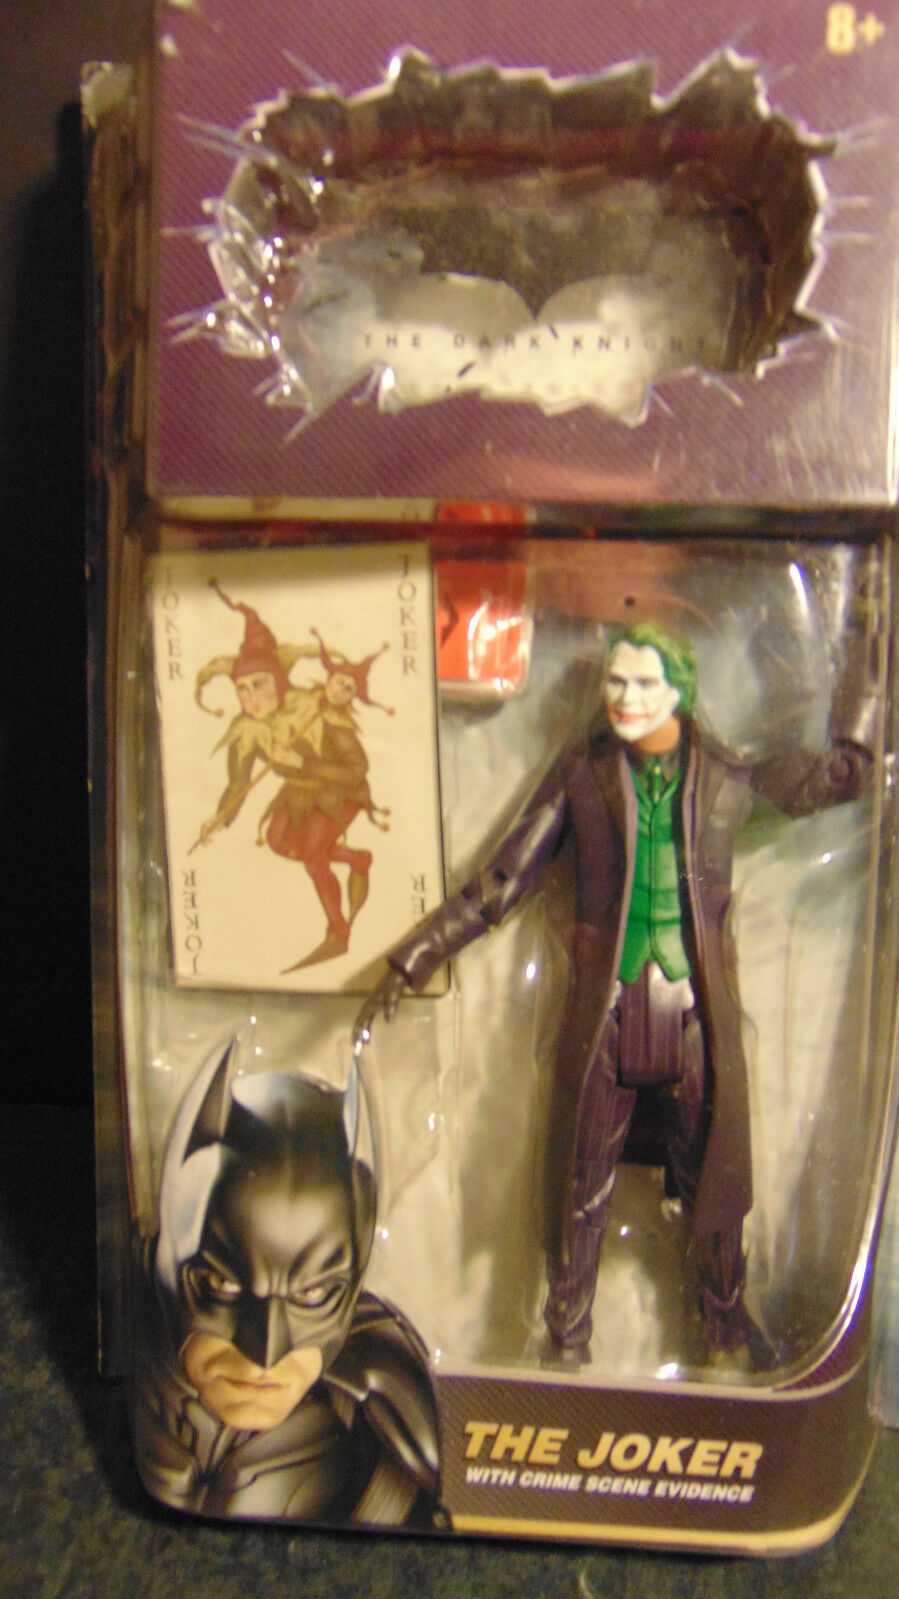 BATMAN DARK KNIGHT JOKER VARIANT ULTRA RARE CARD EVIDENCE TRUE FIRST RELEASE